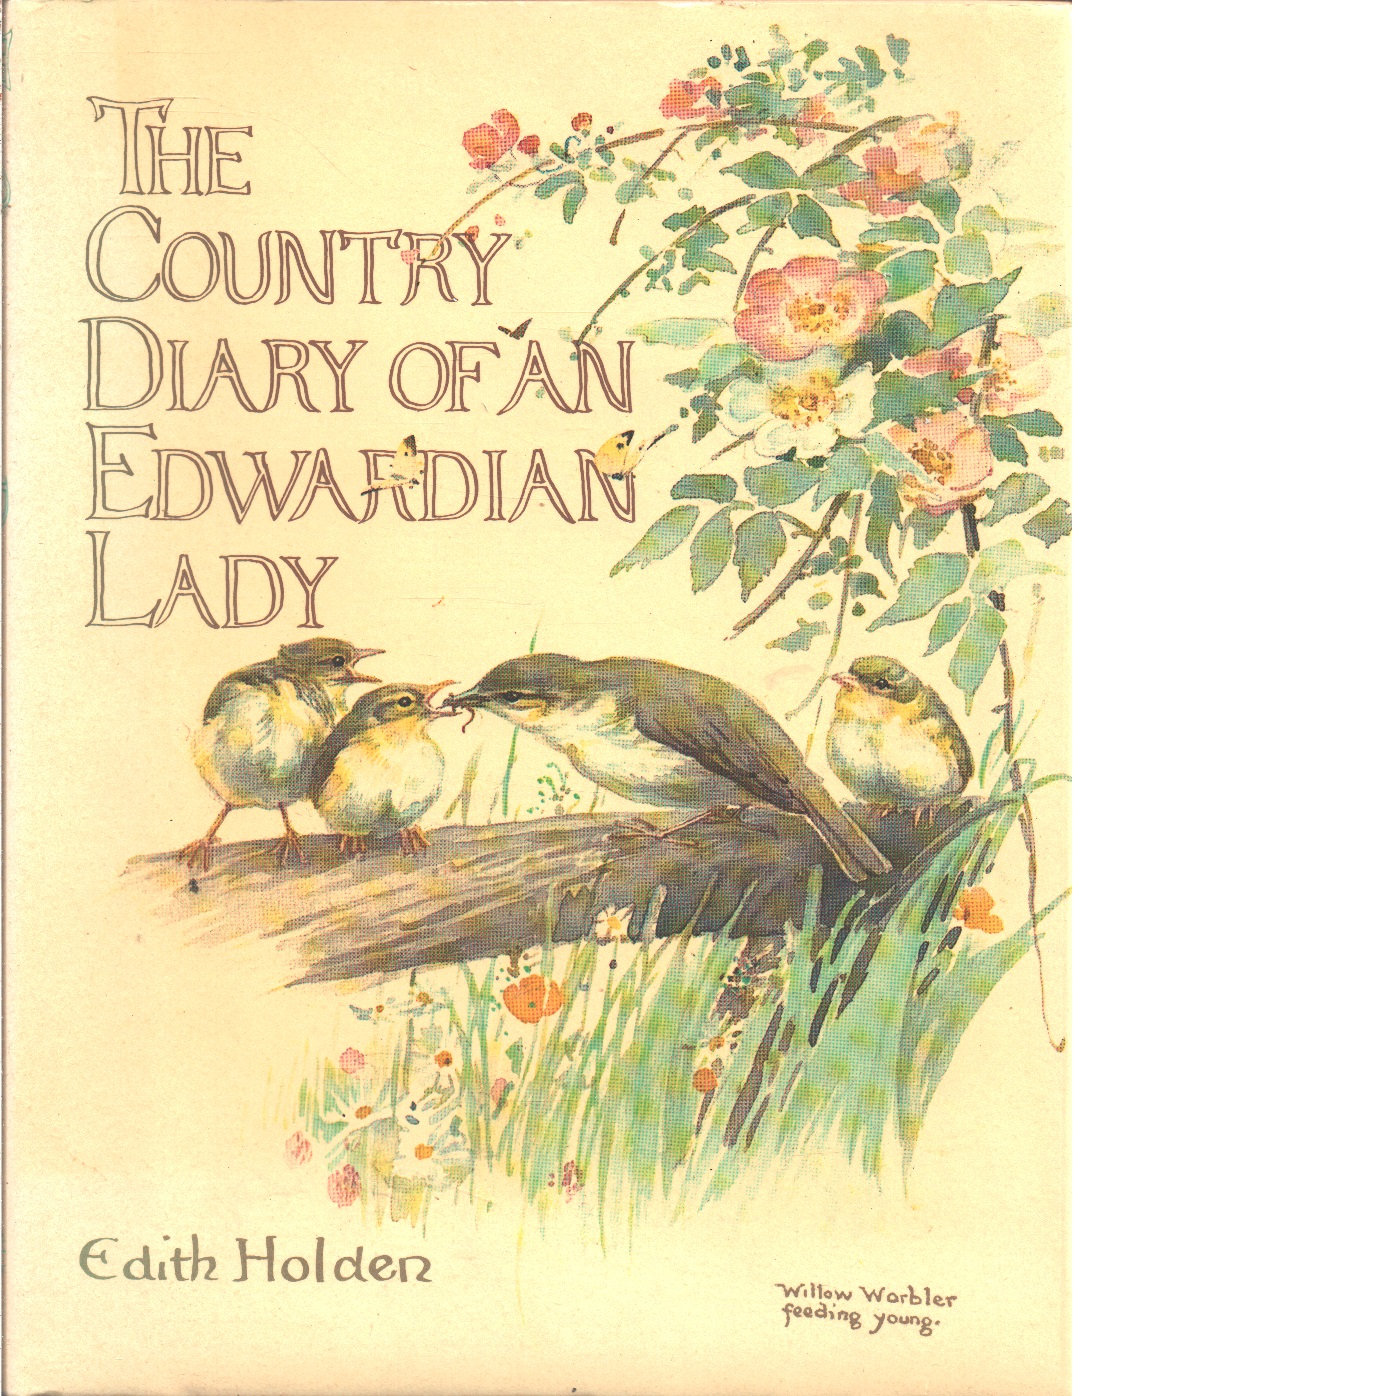 The country diary of an Edwardian lady : a facsimile reproduction of a naturalist's diary for the year 1906  - Holden, Edith B.